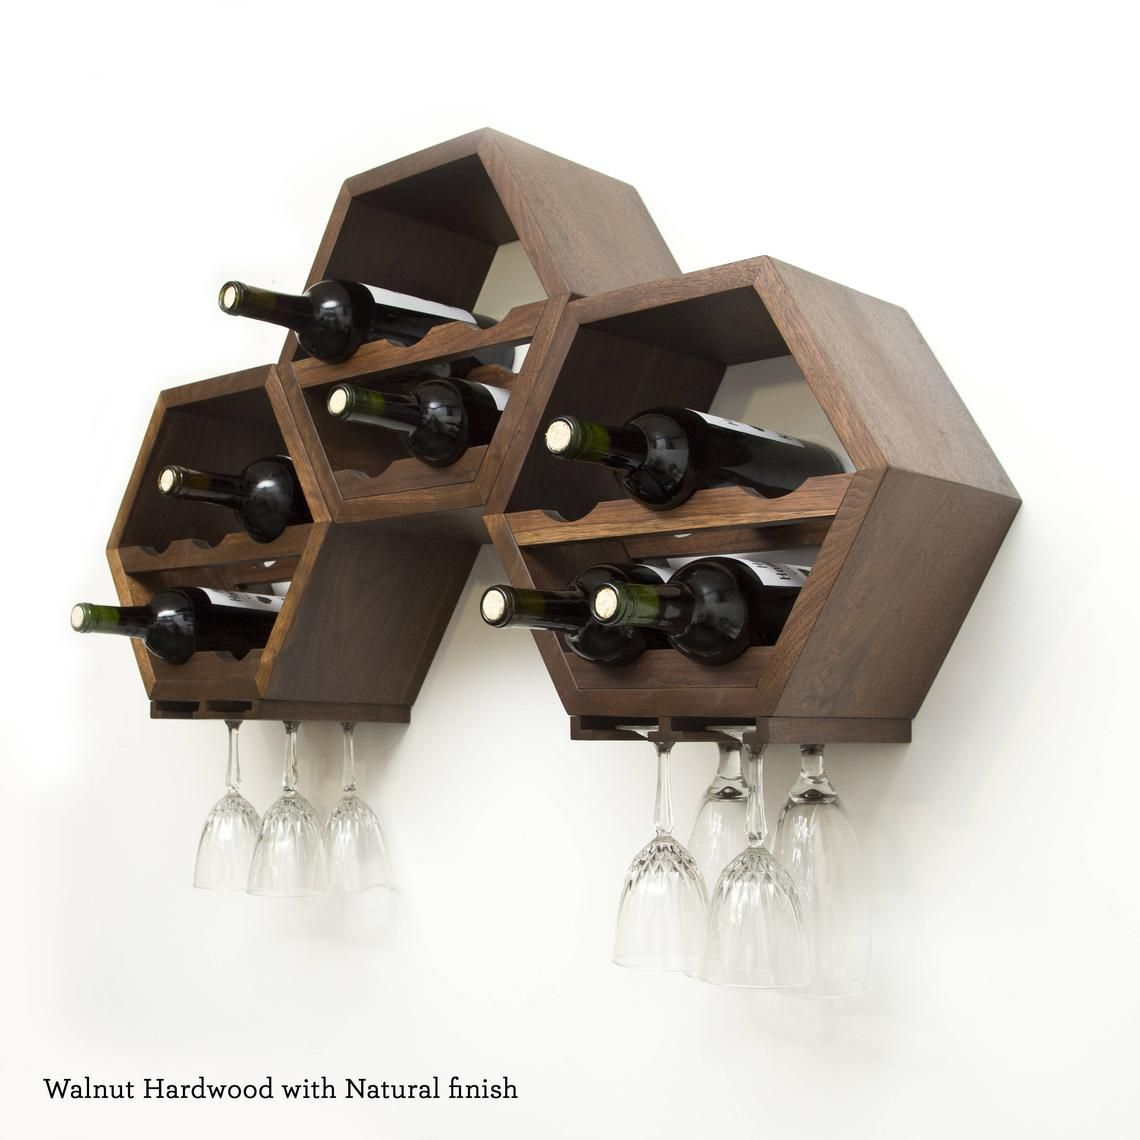 Cantinetta Legno Per Vino wood wine rack kitchen decor - wine storage gift idea